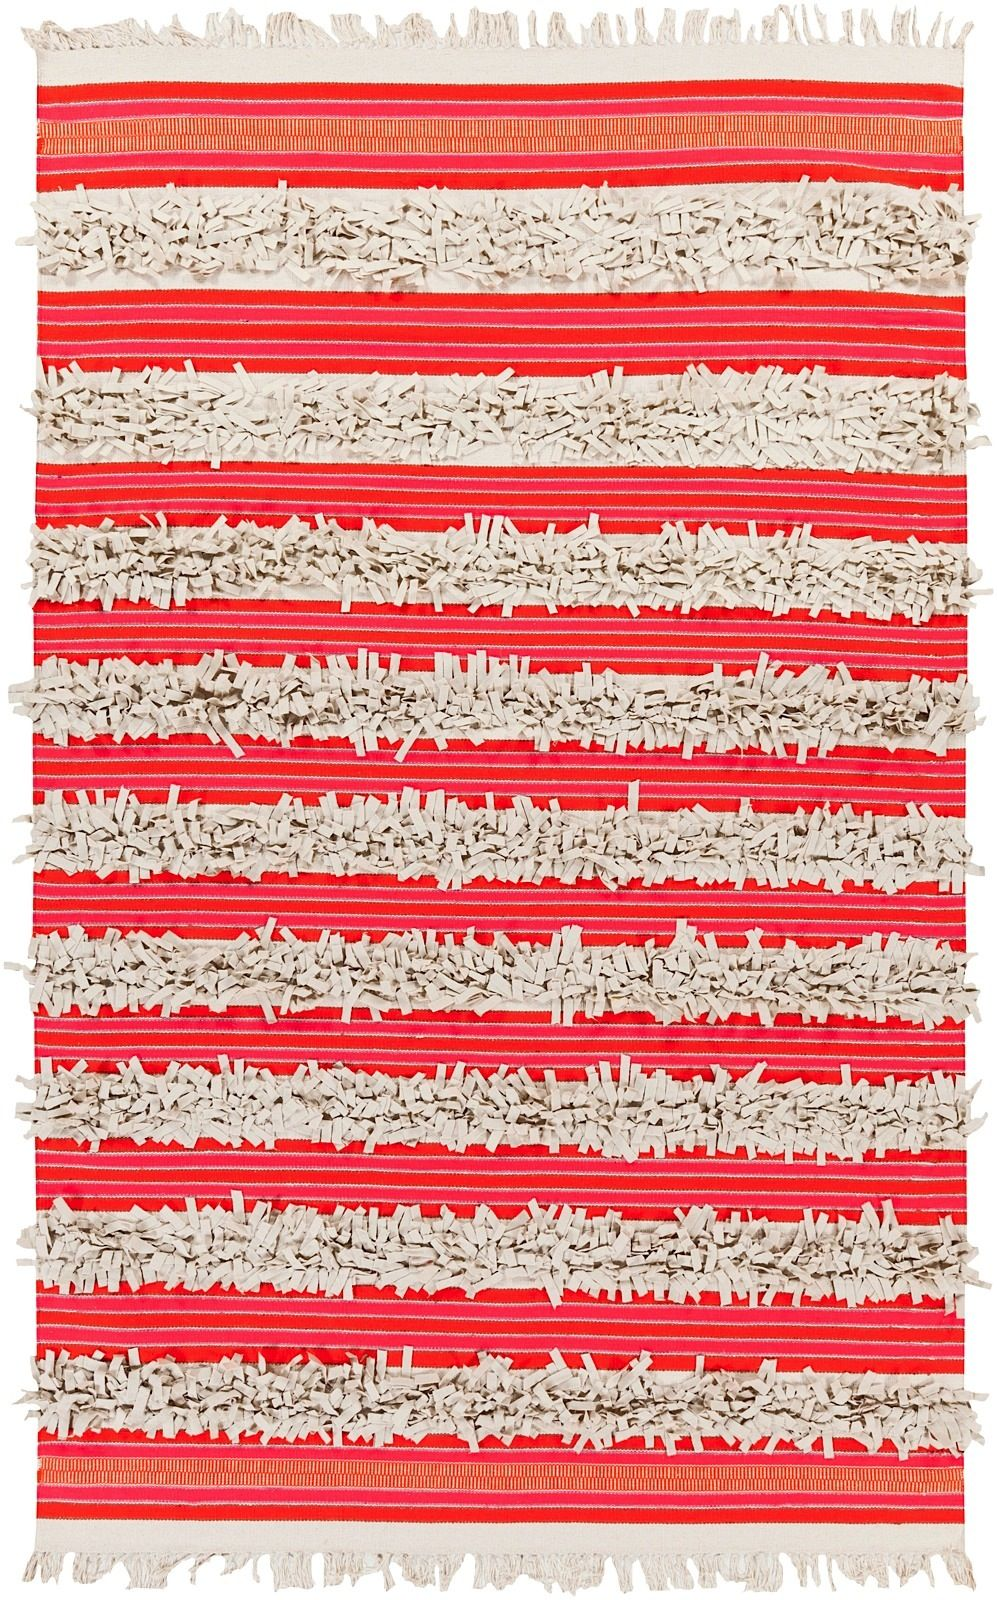 surya steps solid/striped area rug collection